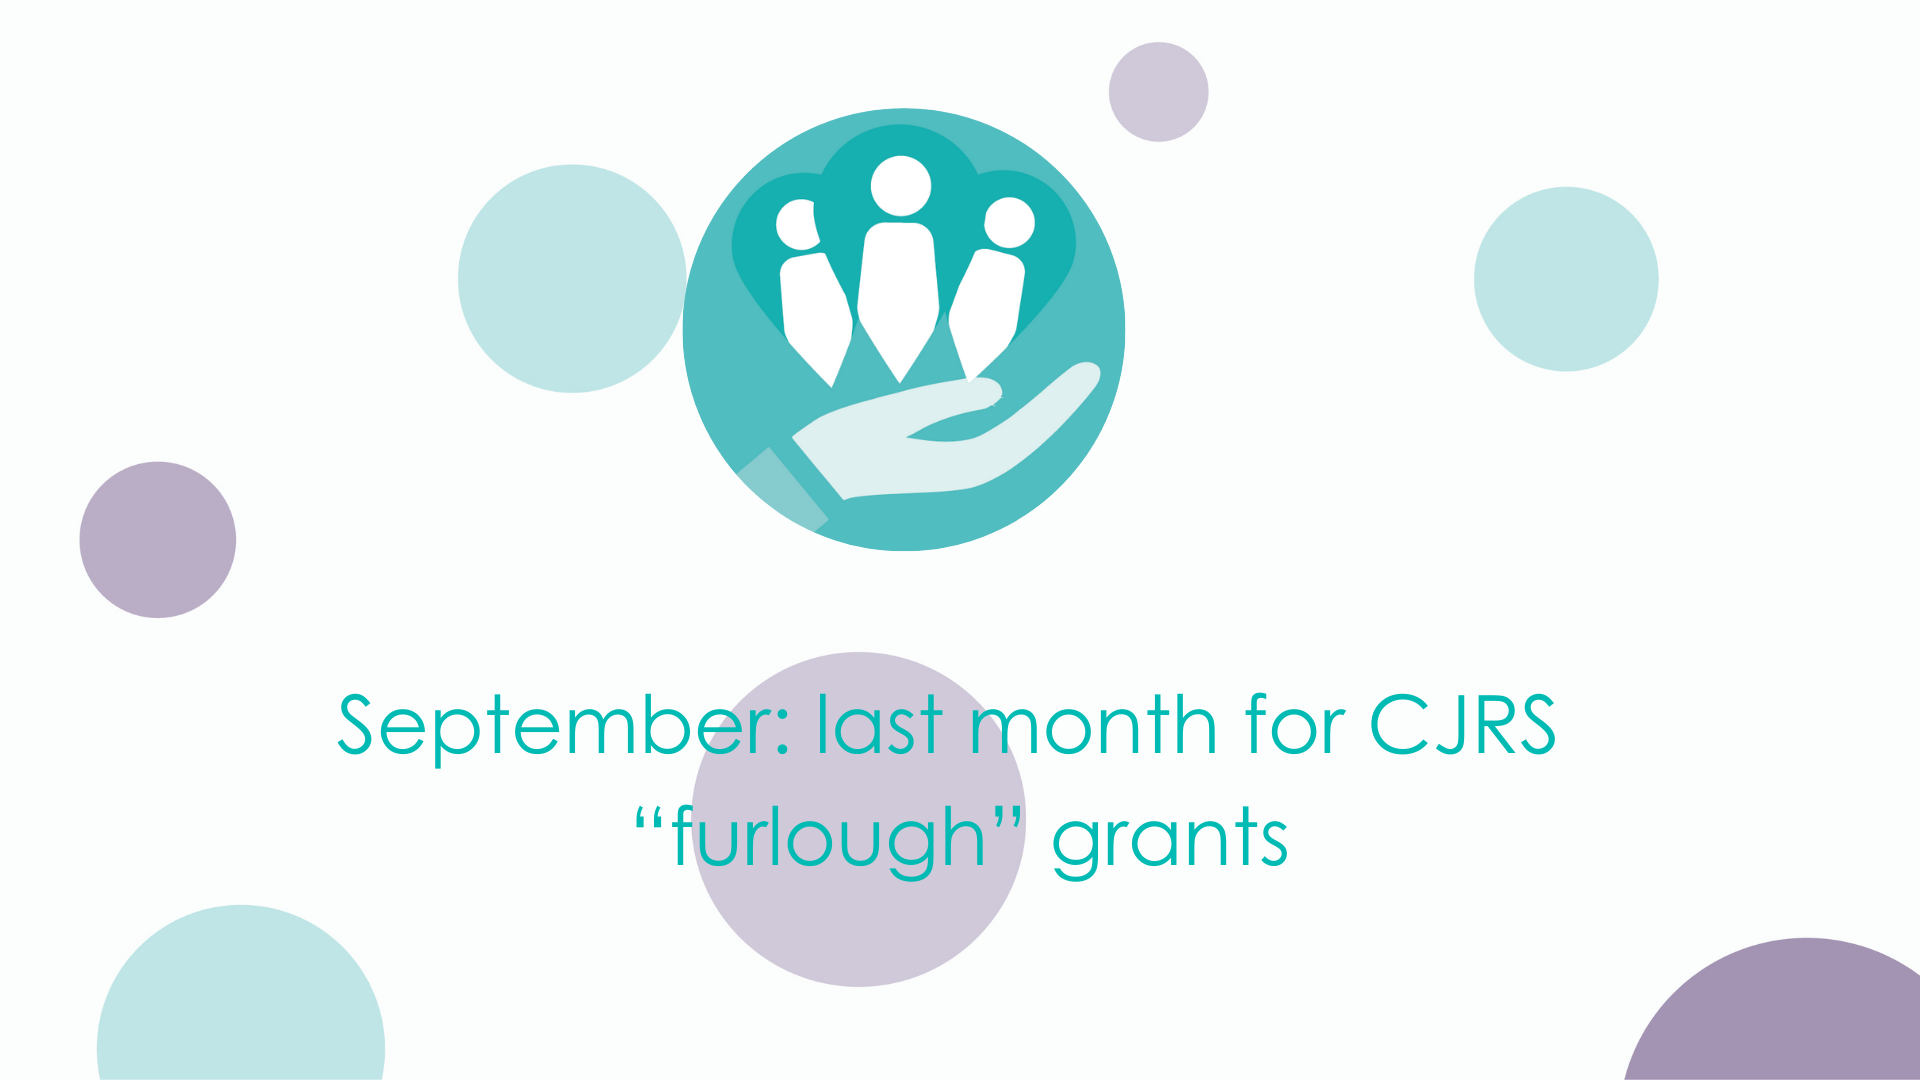 """SEPTEMBER IS THE LAST MONTH FOR CJRS """"FURLOUGH"""" GRANTS"""